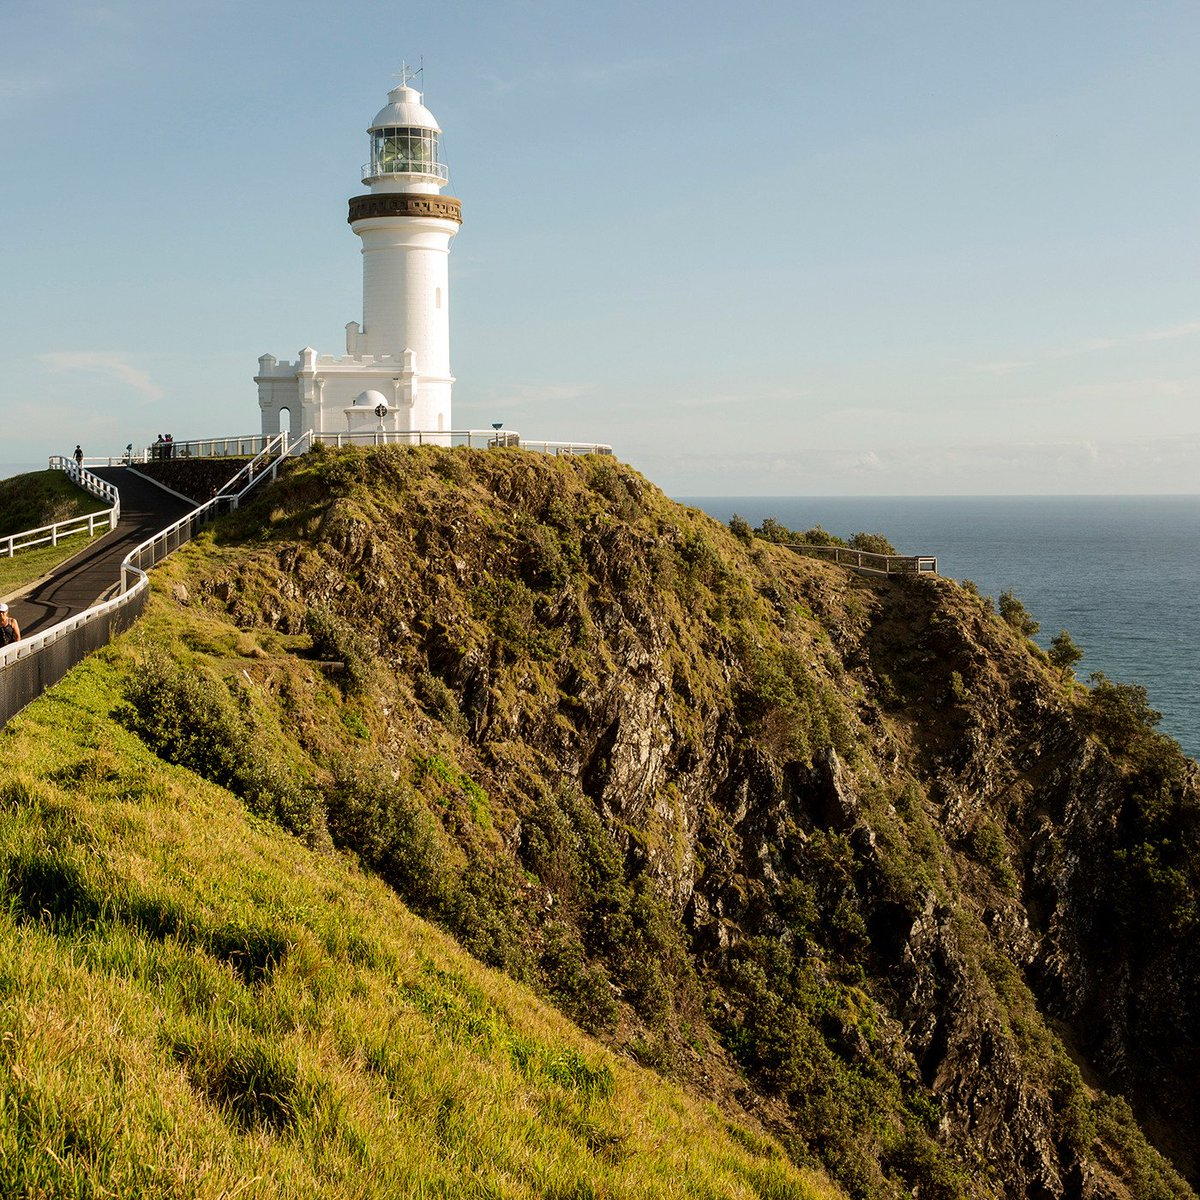 Located on the most eastern point of Australia, Cape Byron Lighthouse is one of the most popular attractions in the region #byronbay#swaindestinations